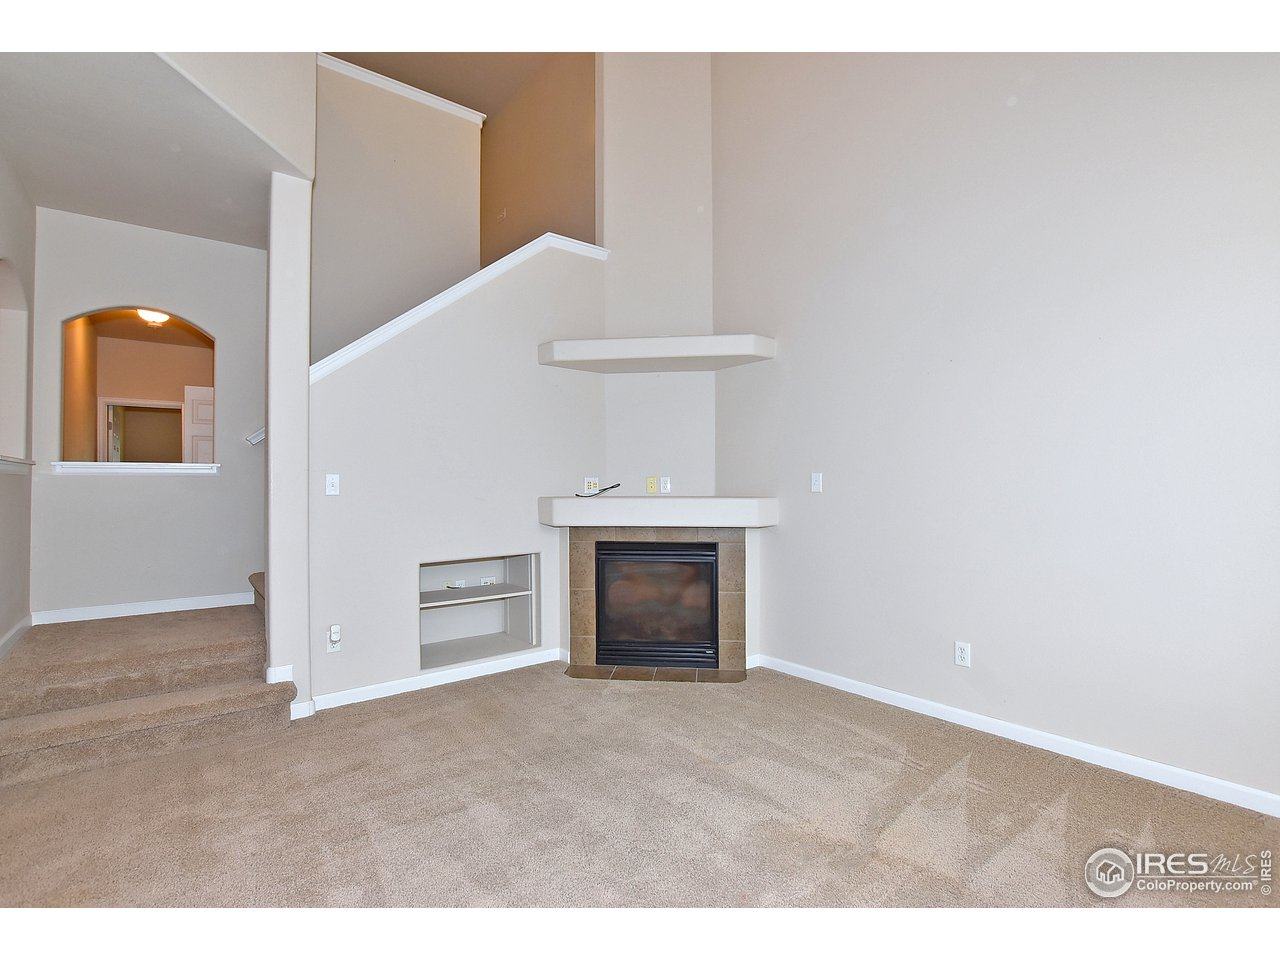 Fireplace and open stairwell